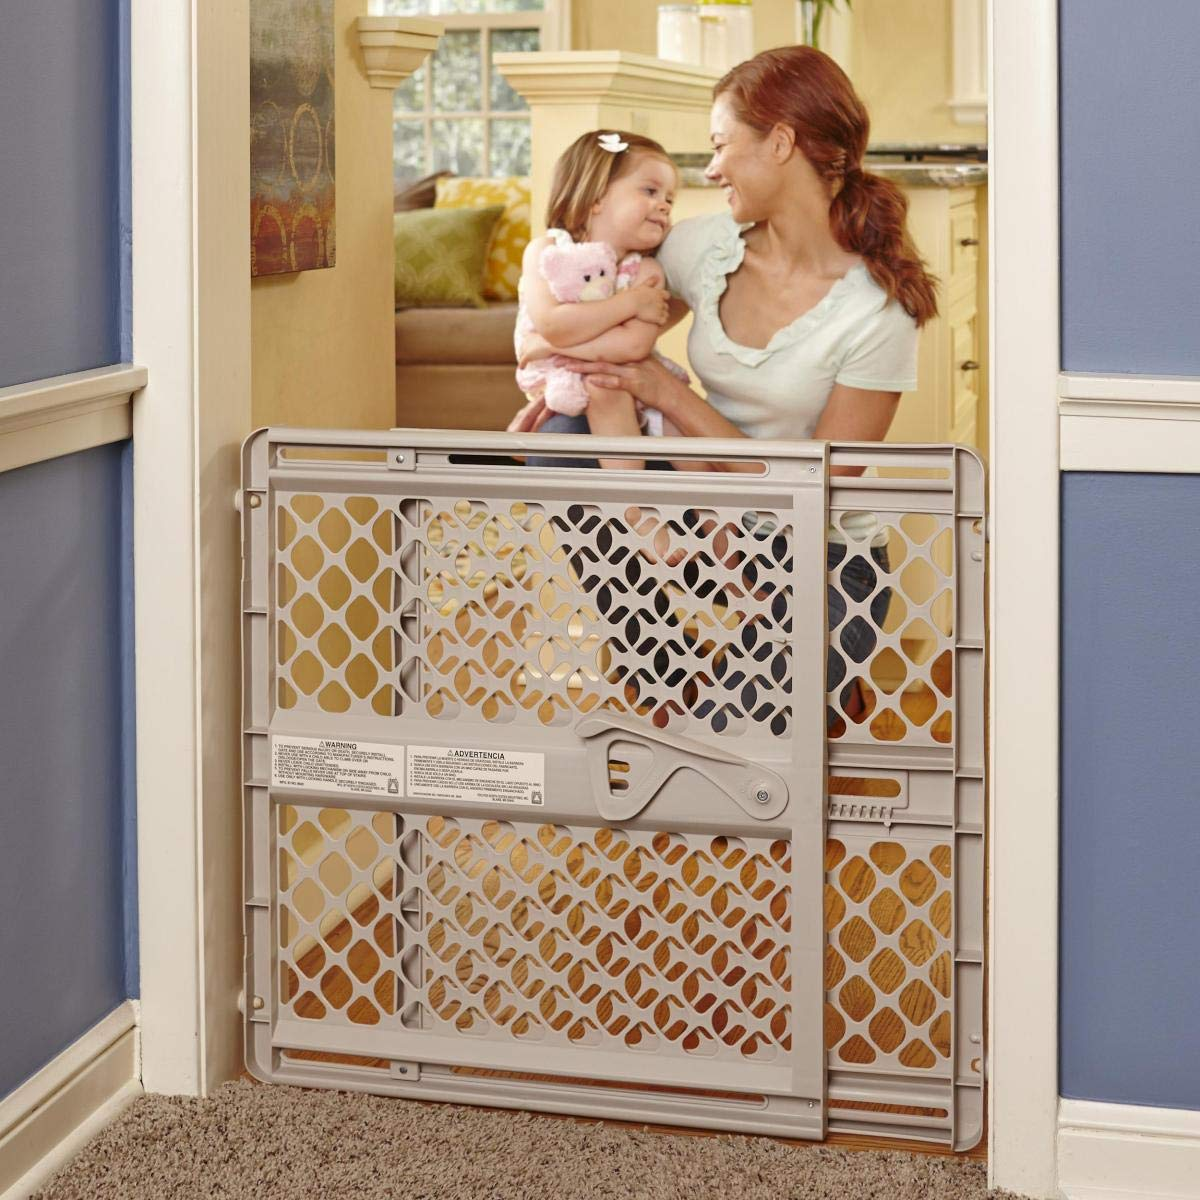 North States 42'' Wide Supergate Ergo Baby Gate: Easy-fit and Adjustable. Pressure or Hardware Mount (mounts Included). Fits 26''-42'' Wide (26'' Tall, Sand) by North States